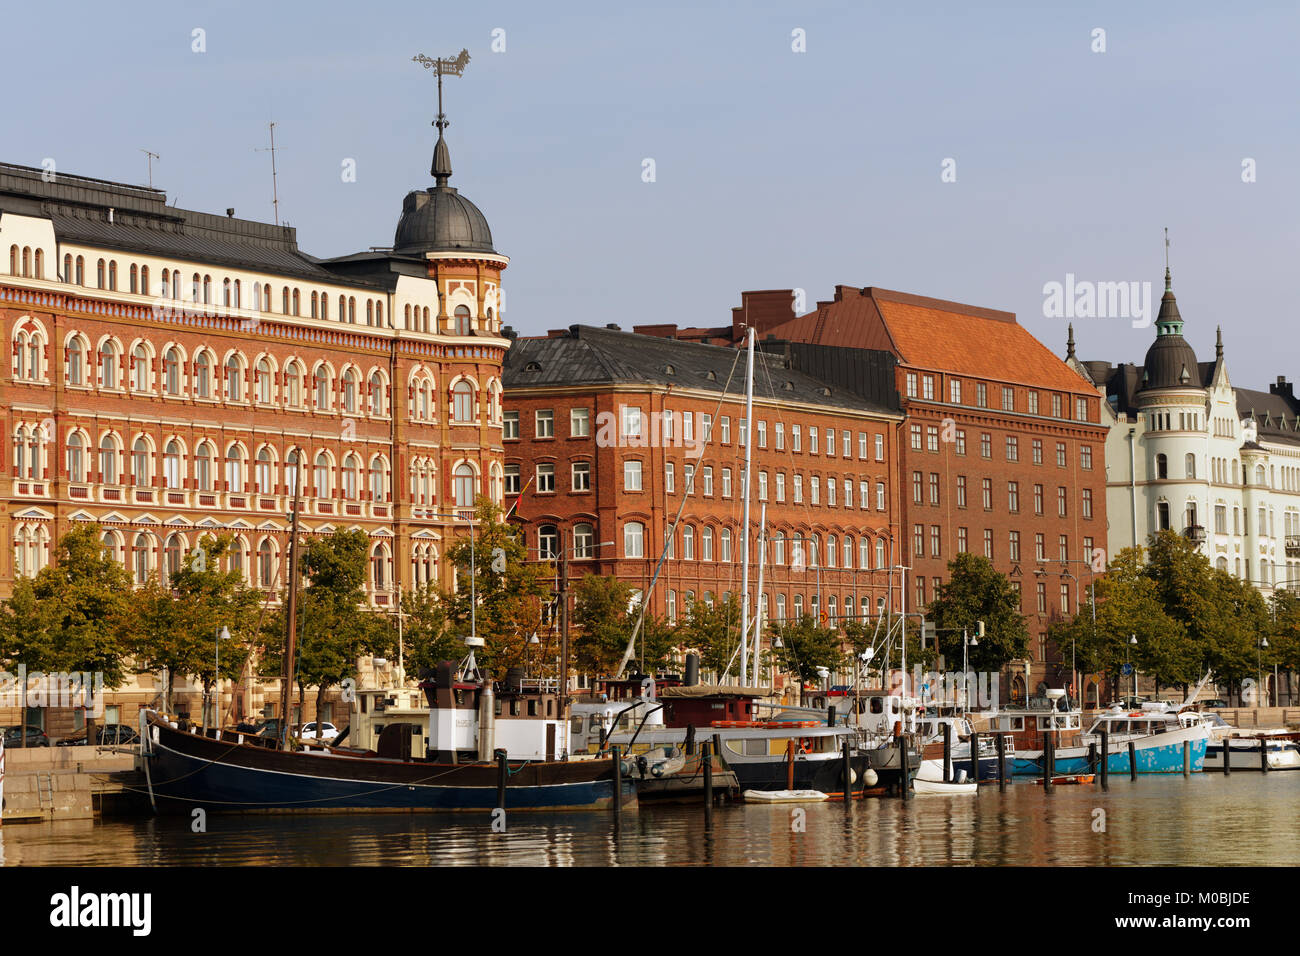 Helsinki, Finland - August 21, 2016: Boats moored at Pohjoisranta waterfront. The name of the area means North Beach - Stock Image